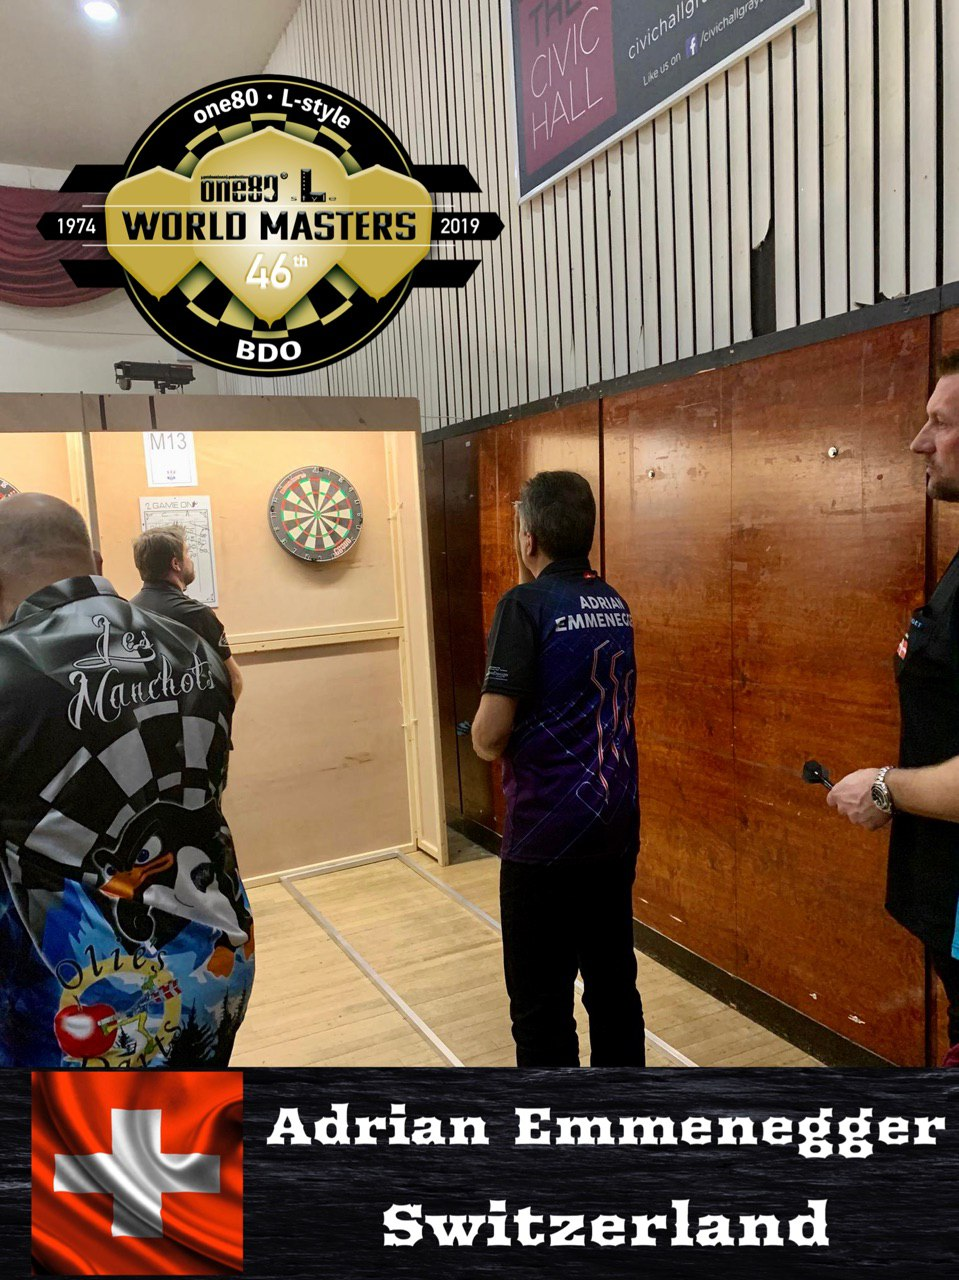 BDO World Masters 2019 Adrian Emmenegger Switzerland